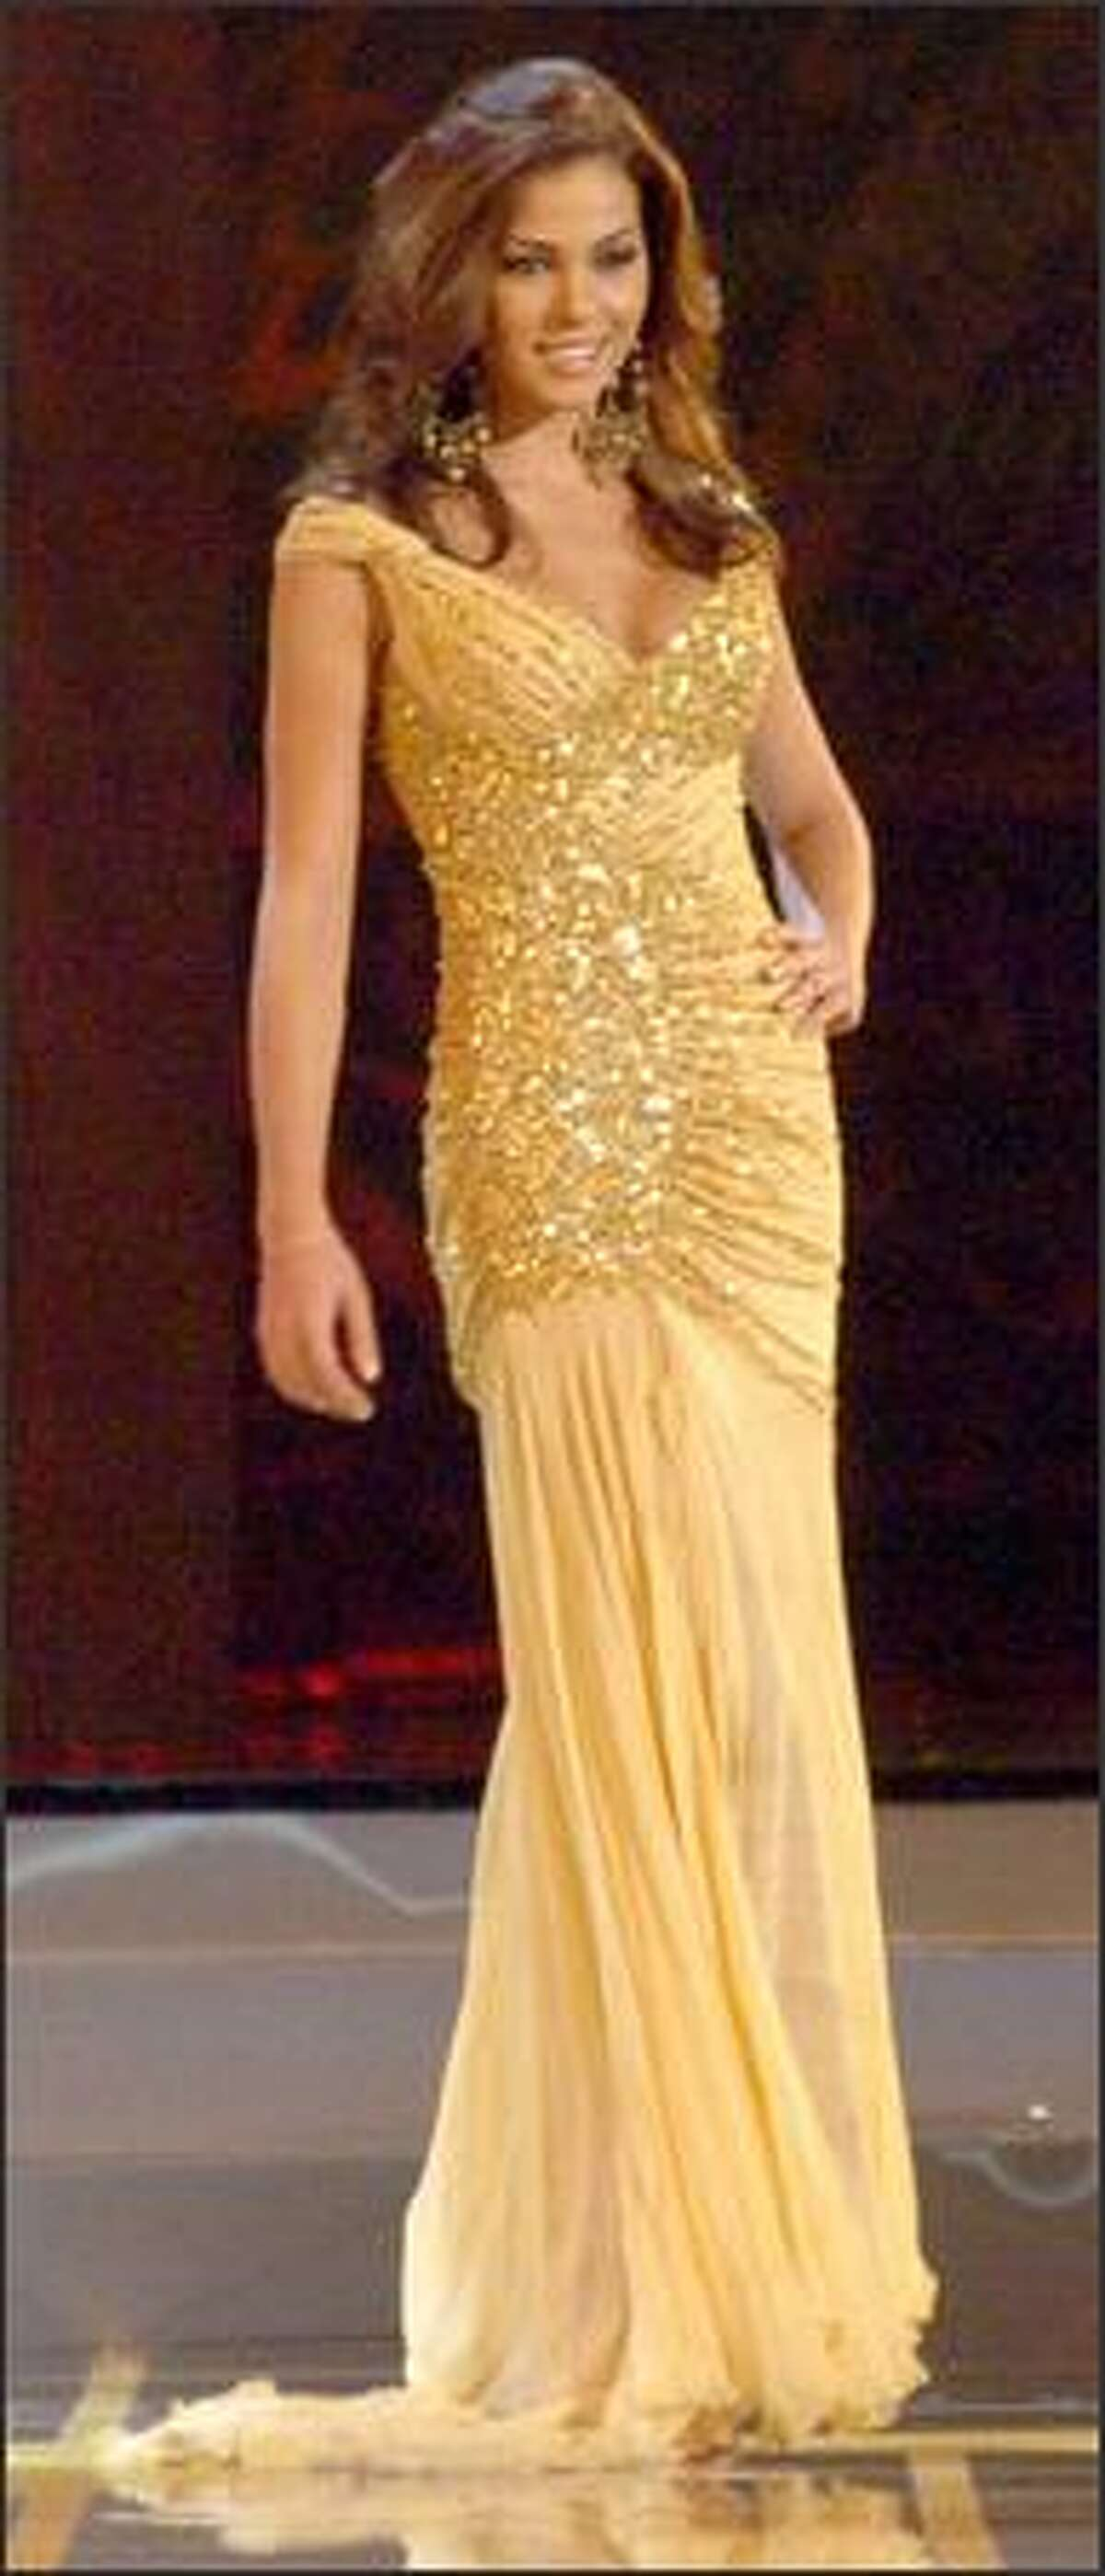 Miss Universe 2005 semi-finalist Laura Elizondo, Miss Mexico, participates in the evening gown portion of the live NBC broadcast of the competition from Impact Arena in Bangkok, Thailand.